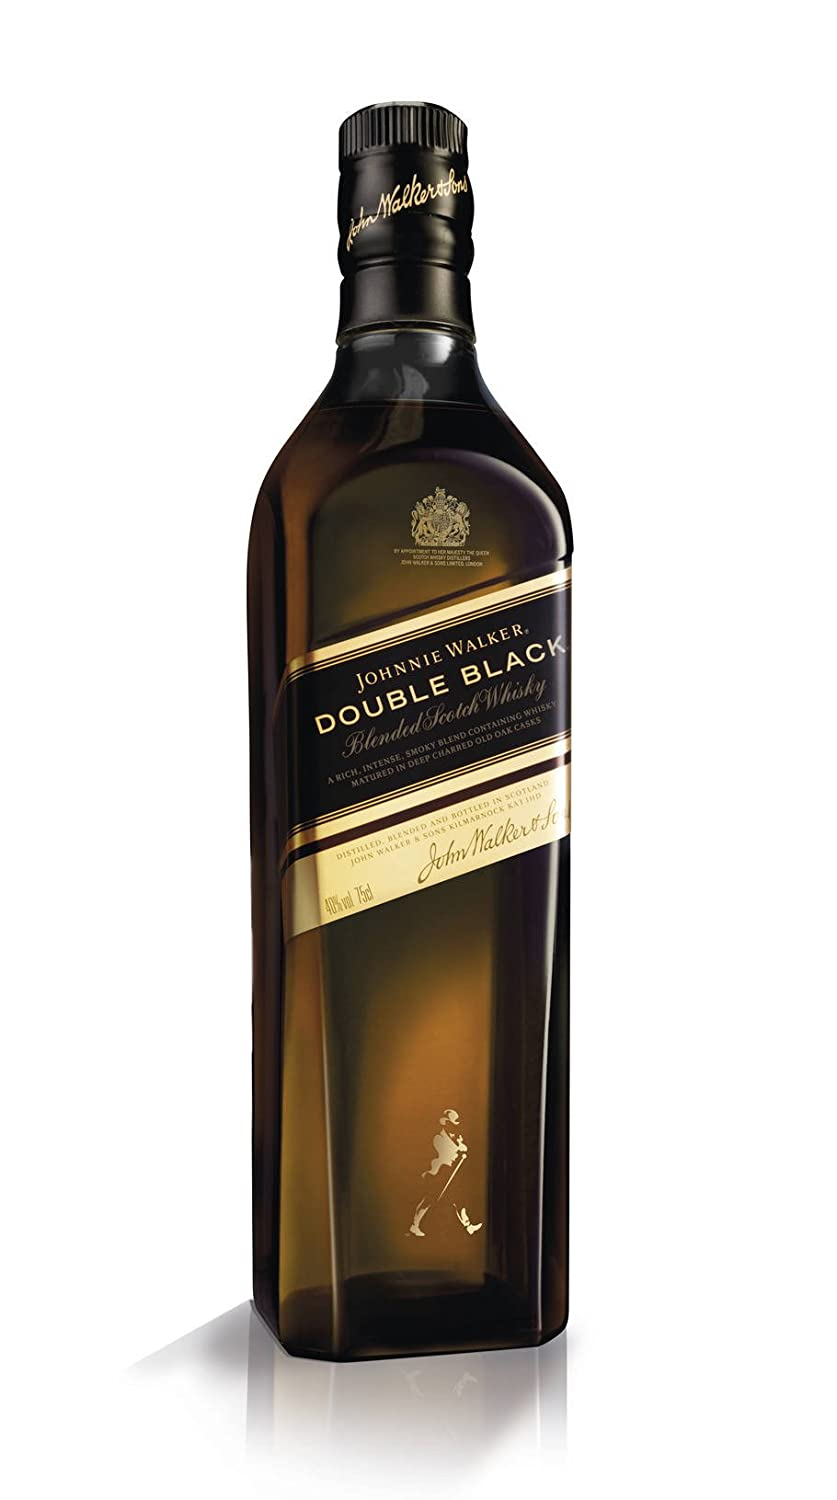 Black Label Price >> Johnnie Walker Double Black Label Blended Scotch Whisky From The Four Corners Of Scotland To Your Glass 70cl